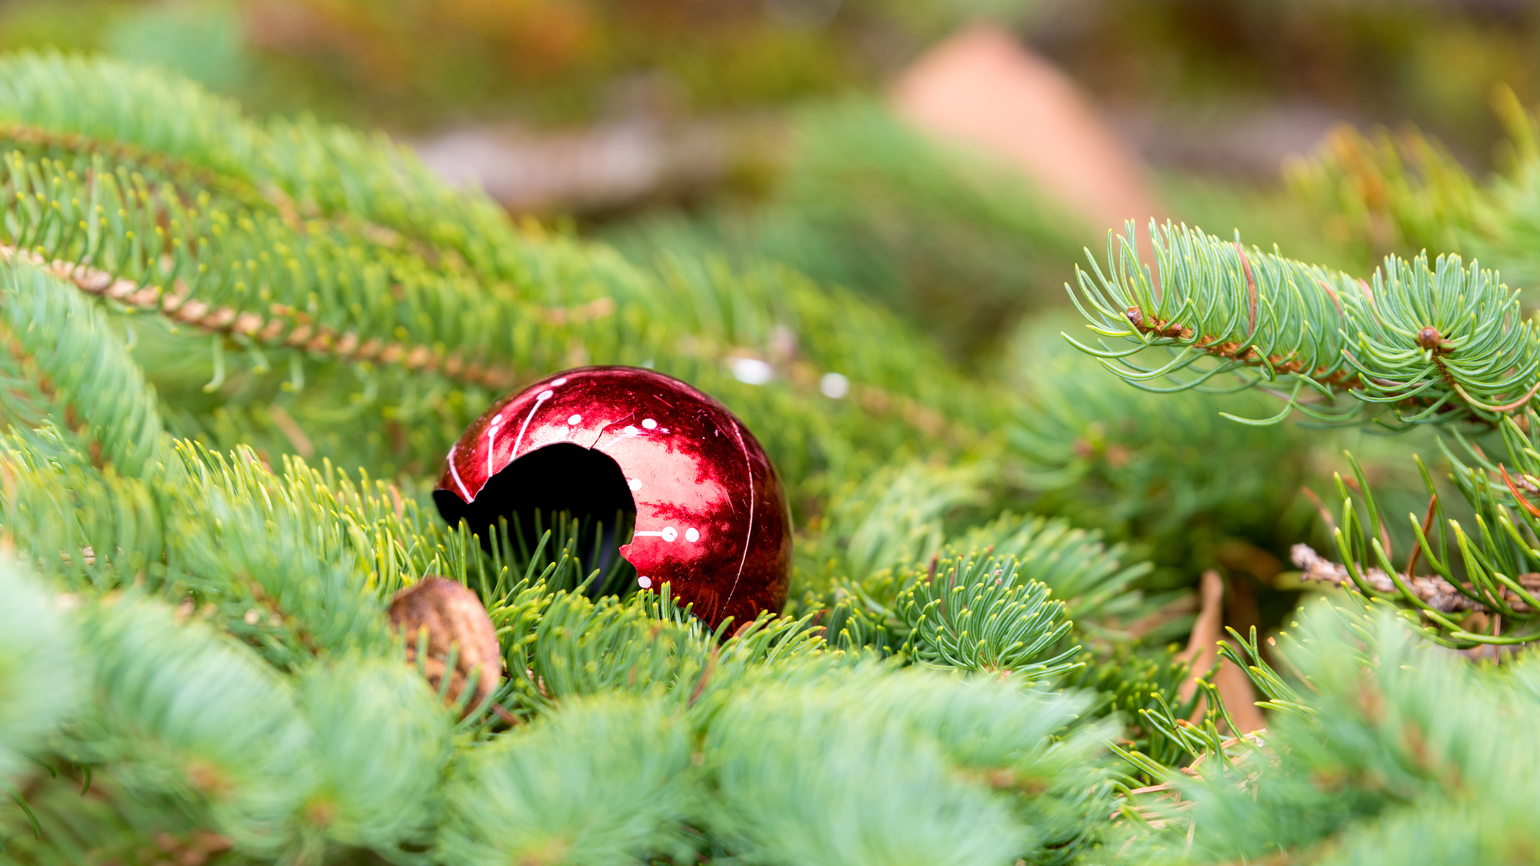 A broken Christmas ornament on top of Christmas tree leaves.